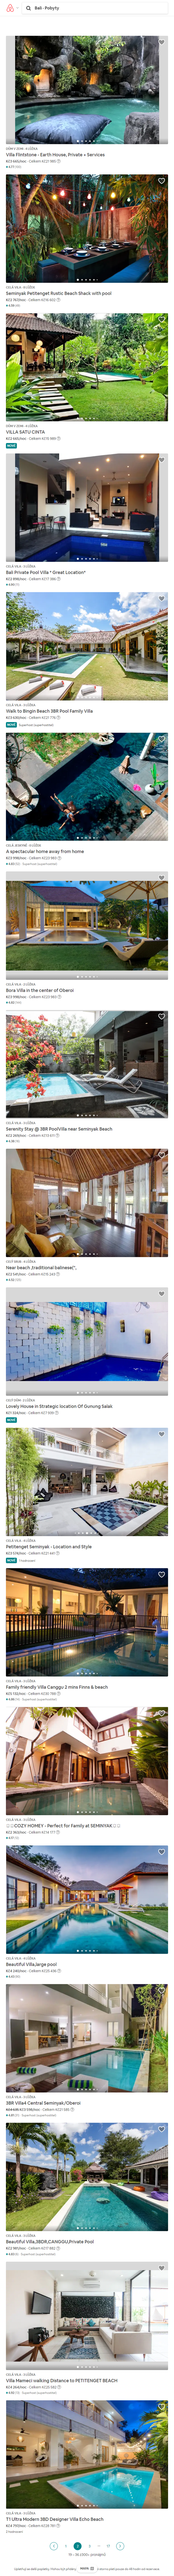 screencapture-airbnb-cz-s-Bali-Indonesia-homes-2019-11-22-22_54_49